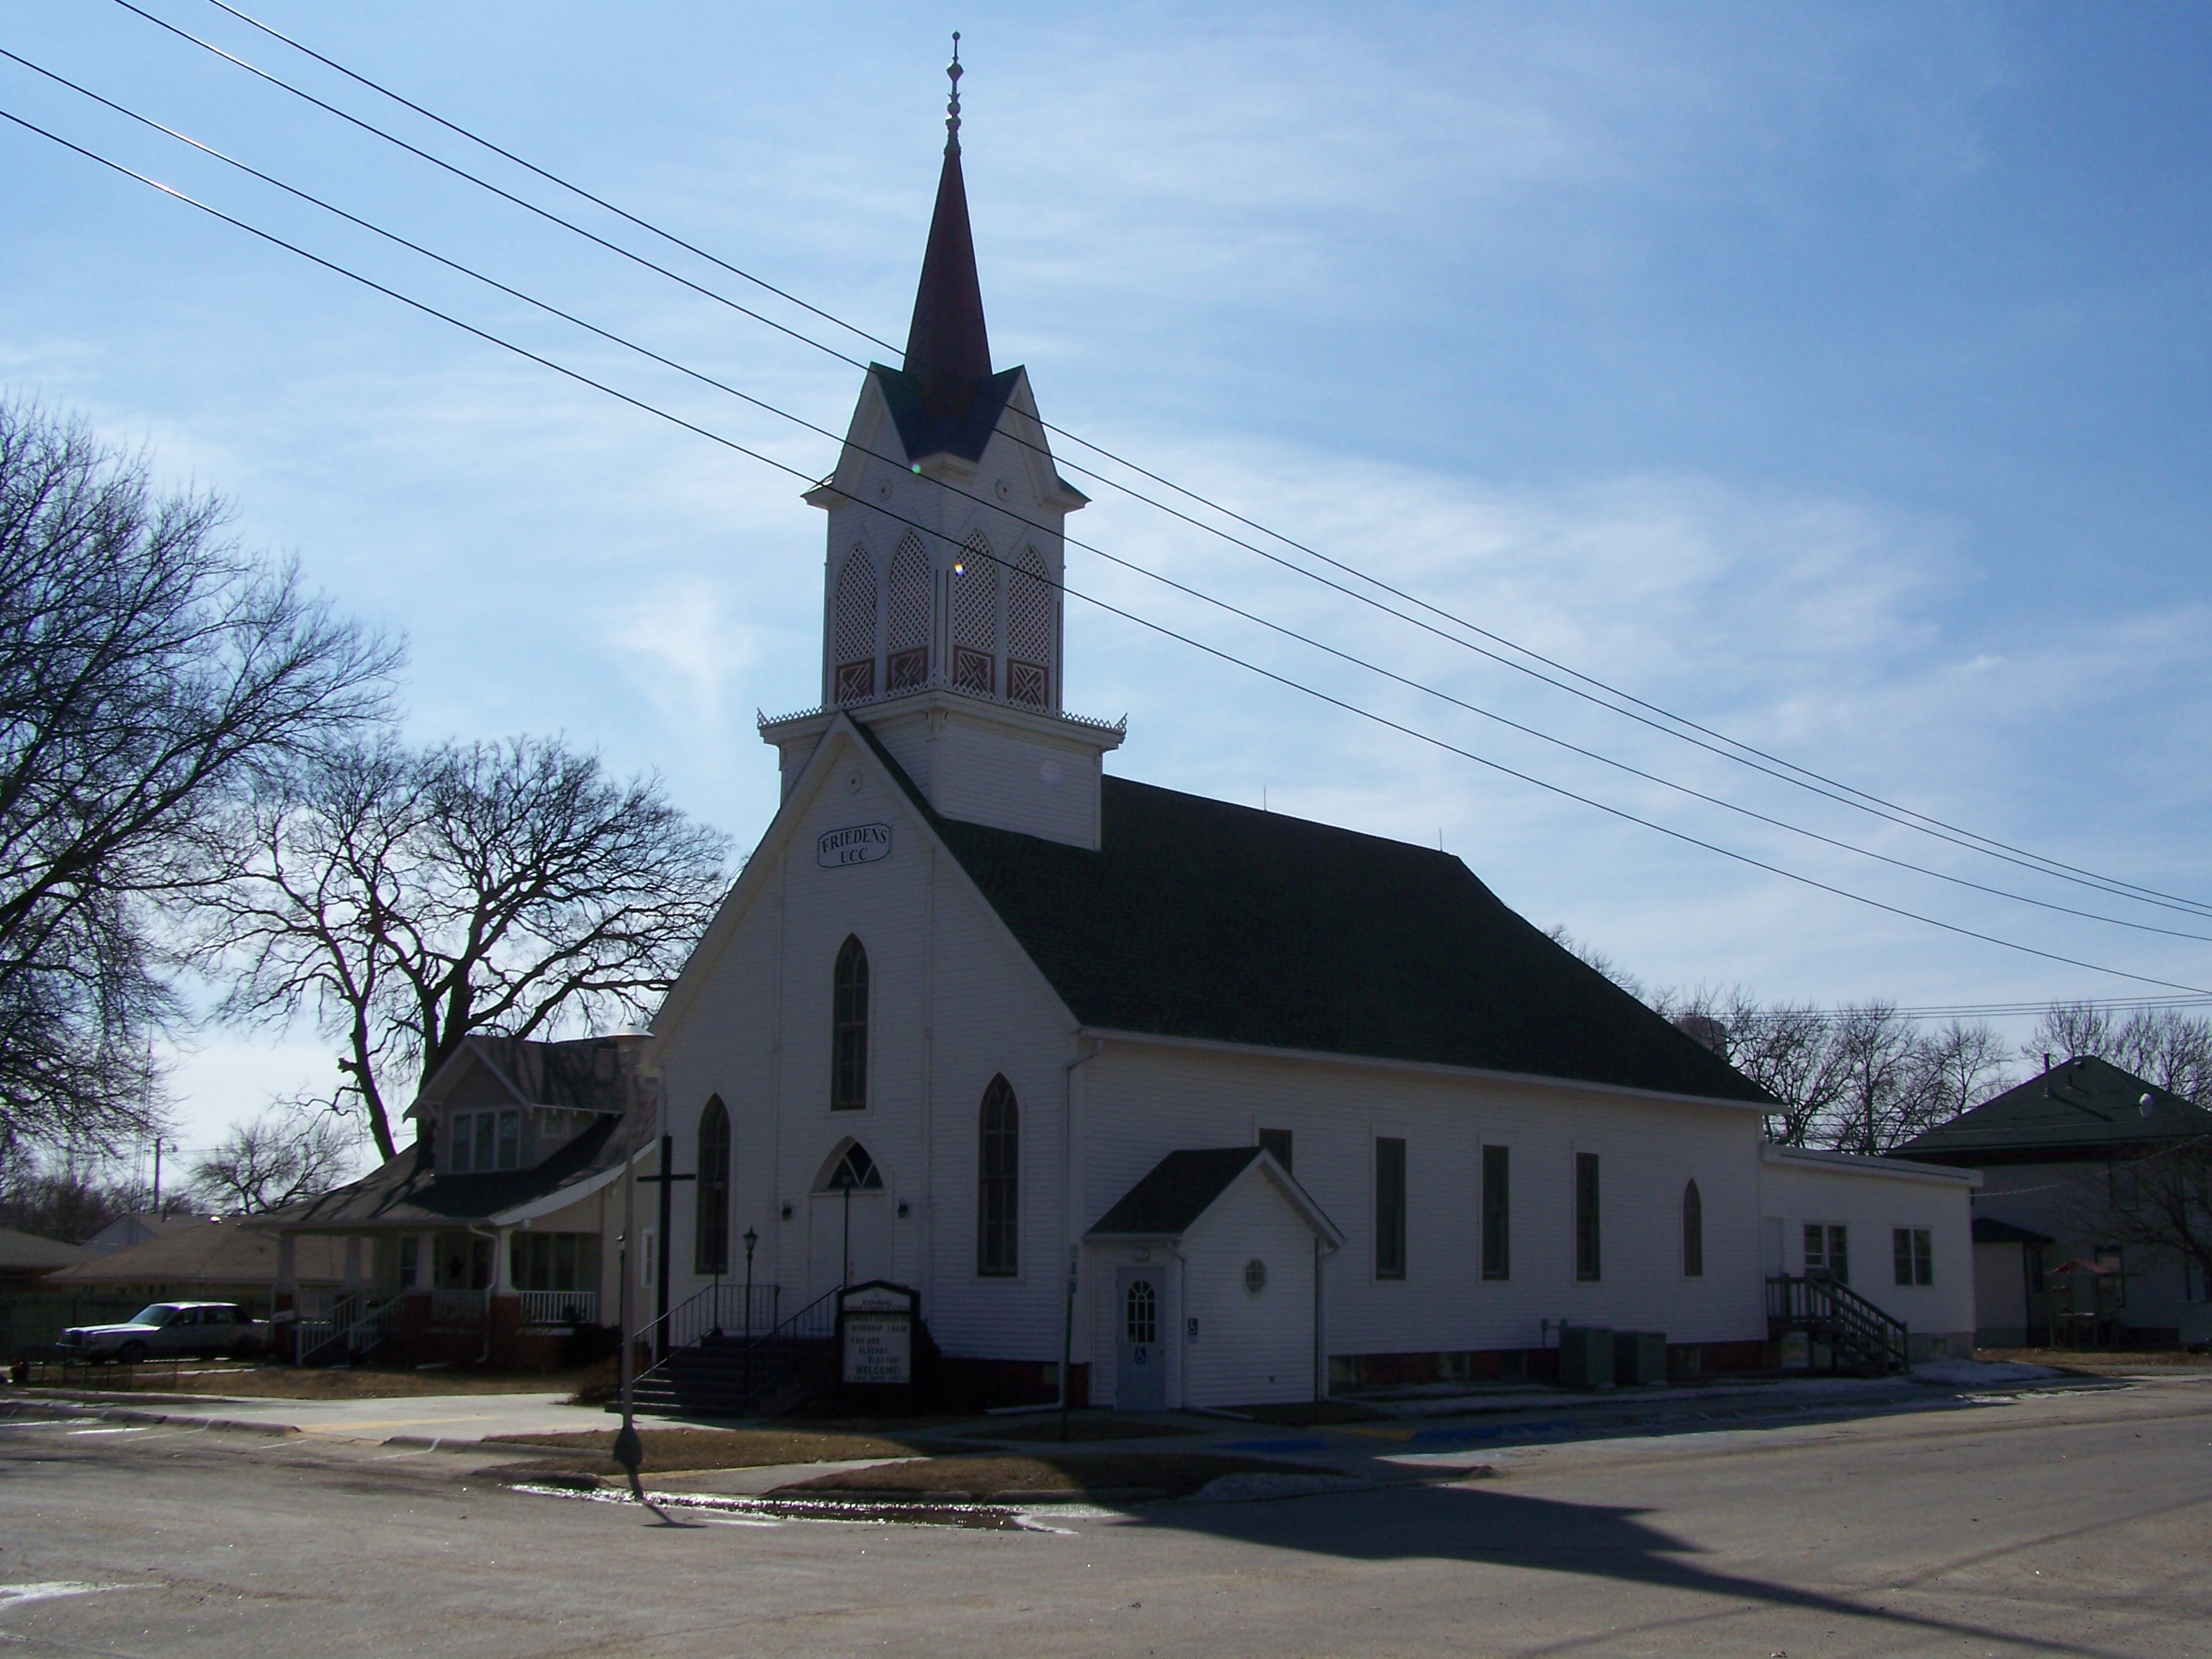 Friedens United Church of Christ, Seward, Nebraska